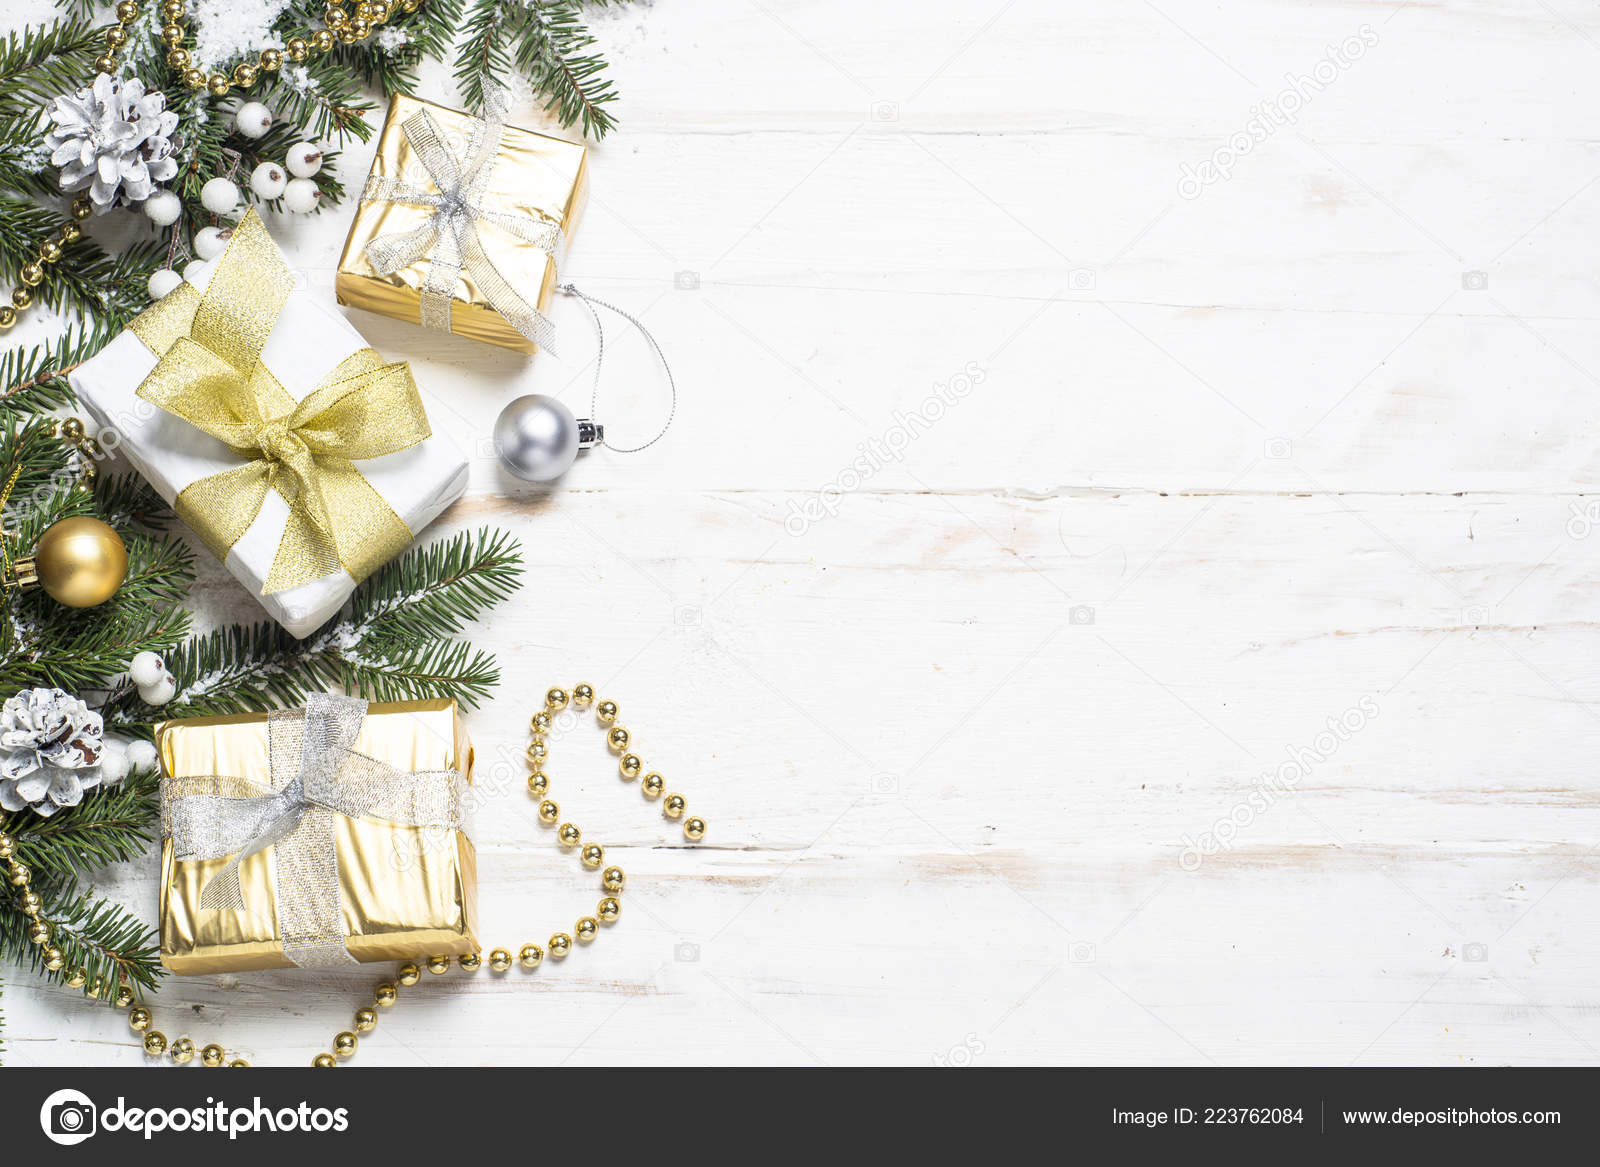 Christmas Background Images Gold.Background White And Silver Christmas Christmas